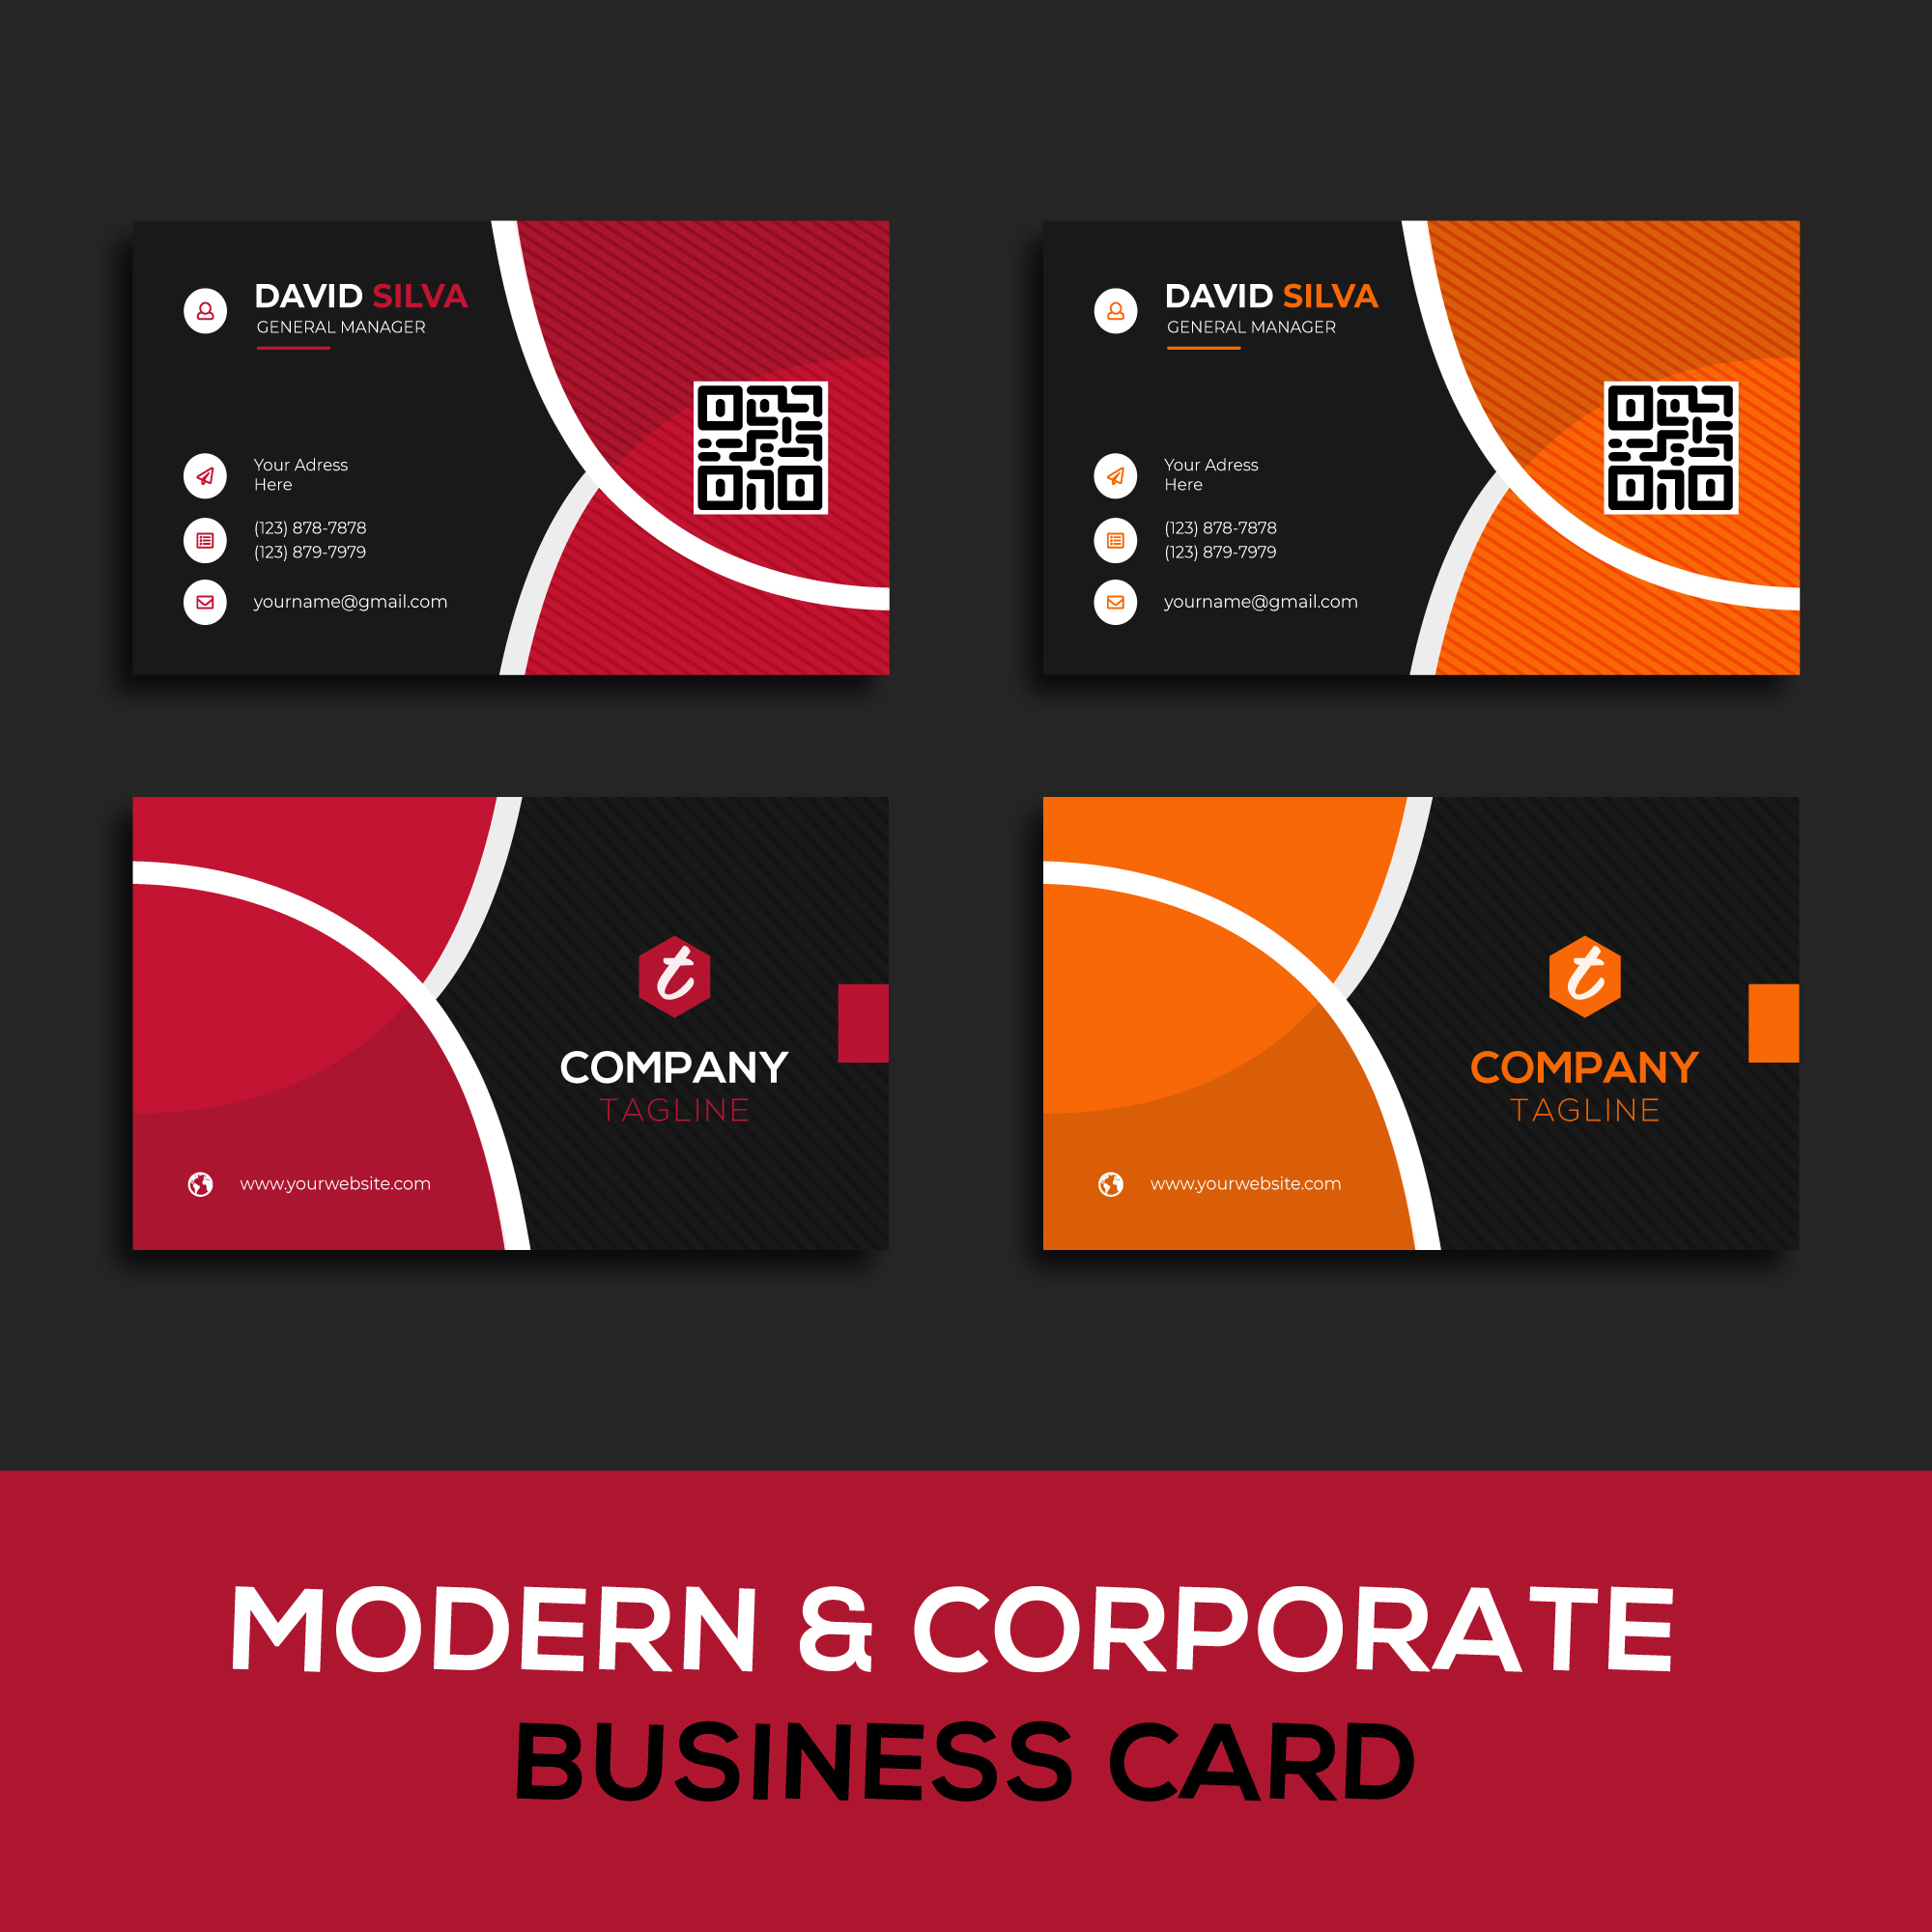 I will provide professional & creative business card design for your company